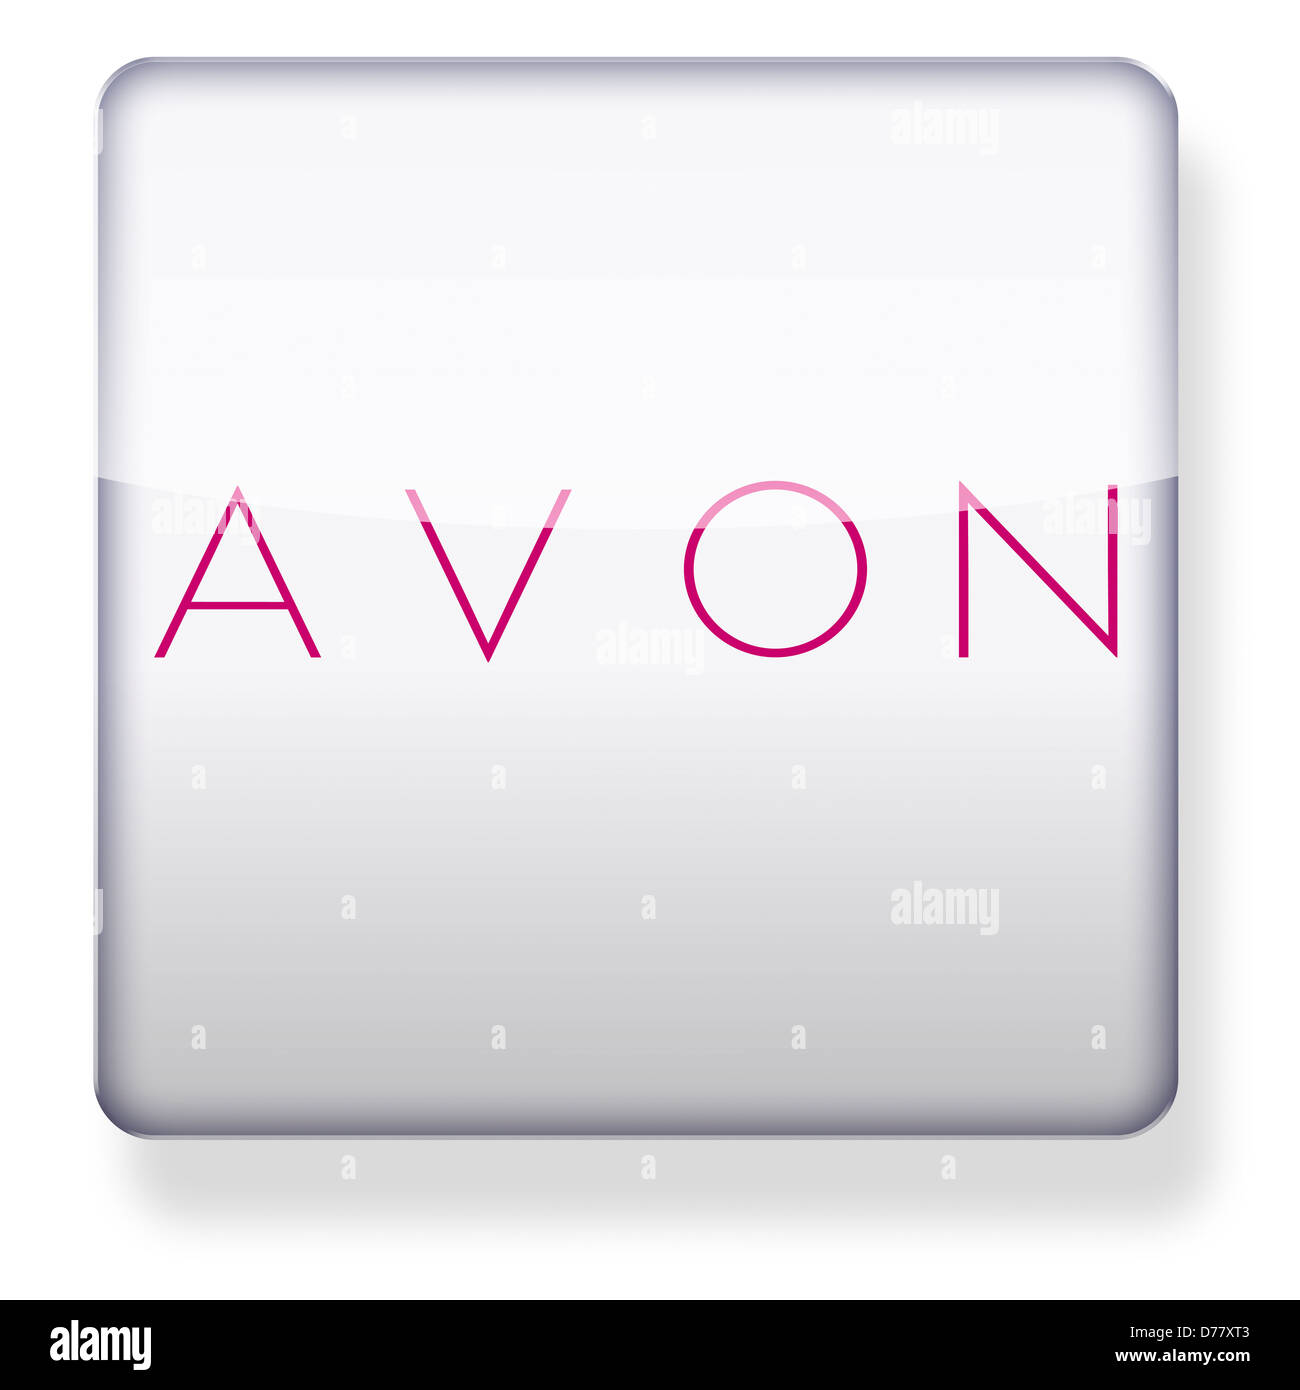 Stock Photo - Avon cosmetics logo as an app icon. Clipping path included